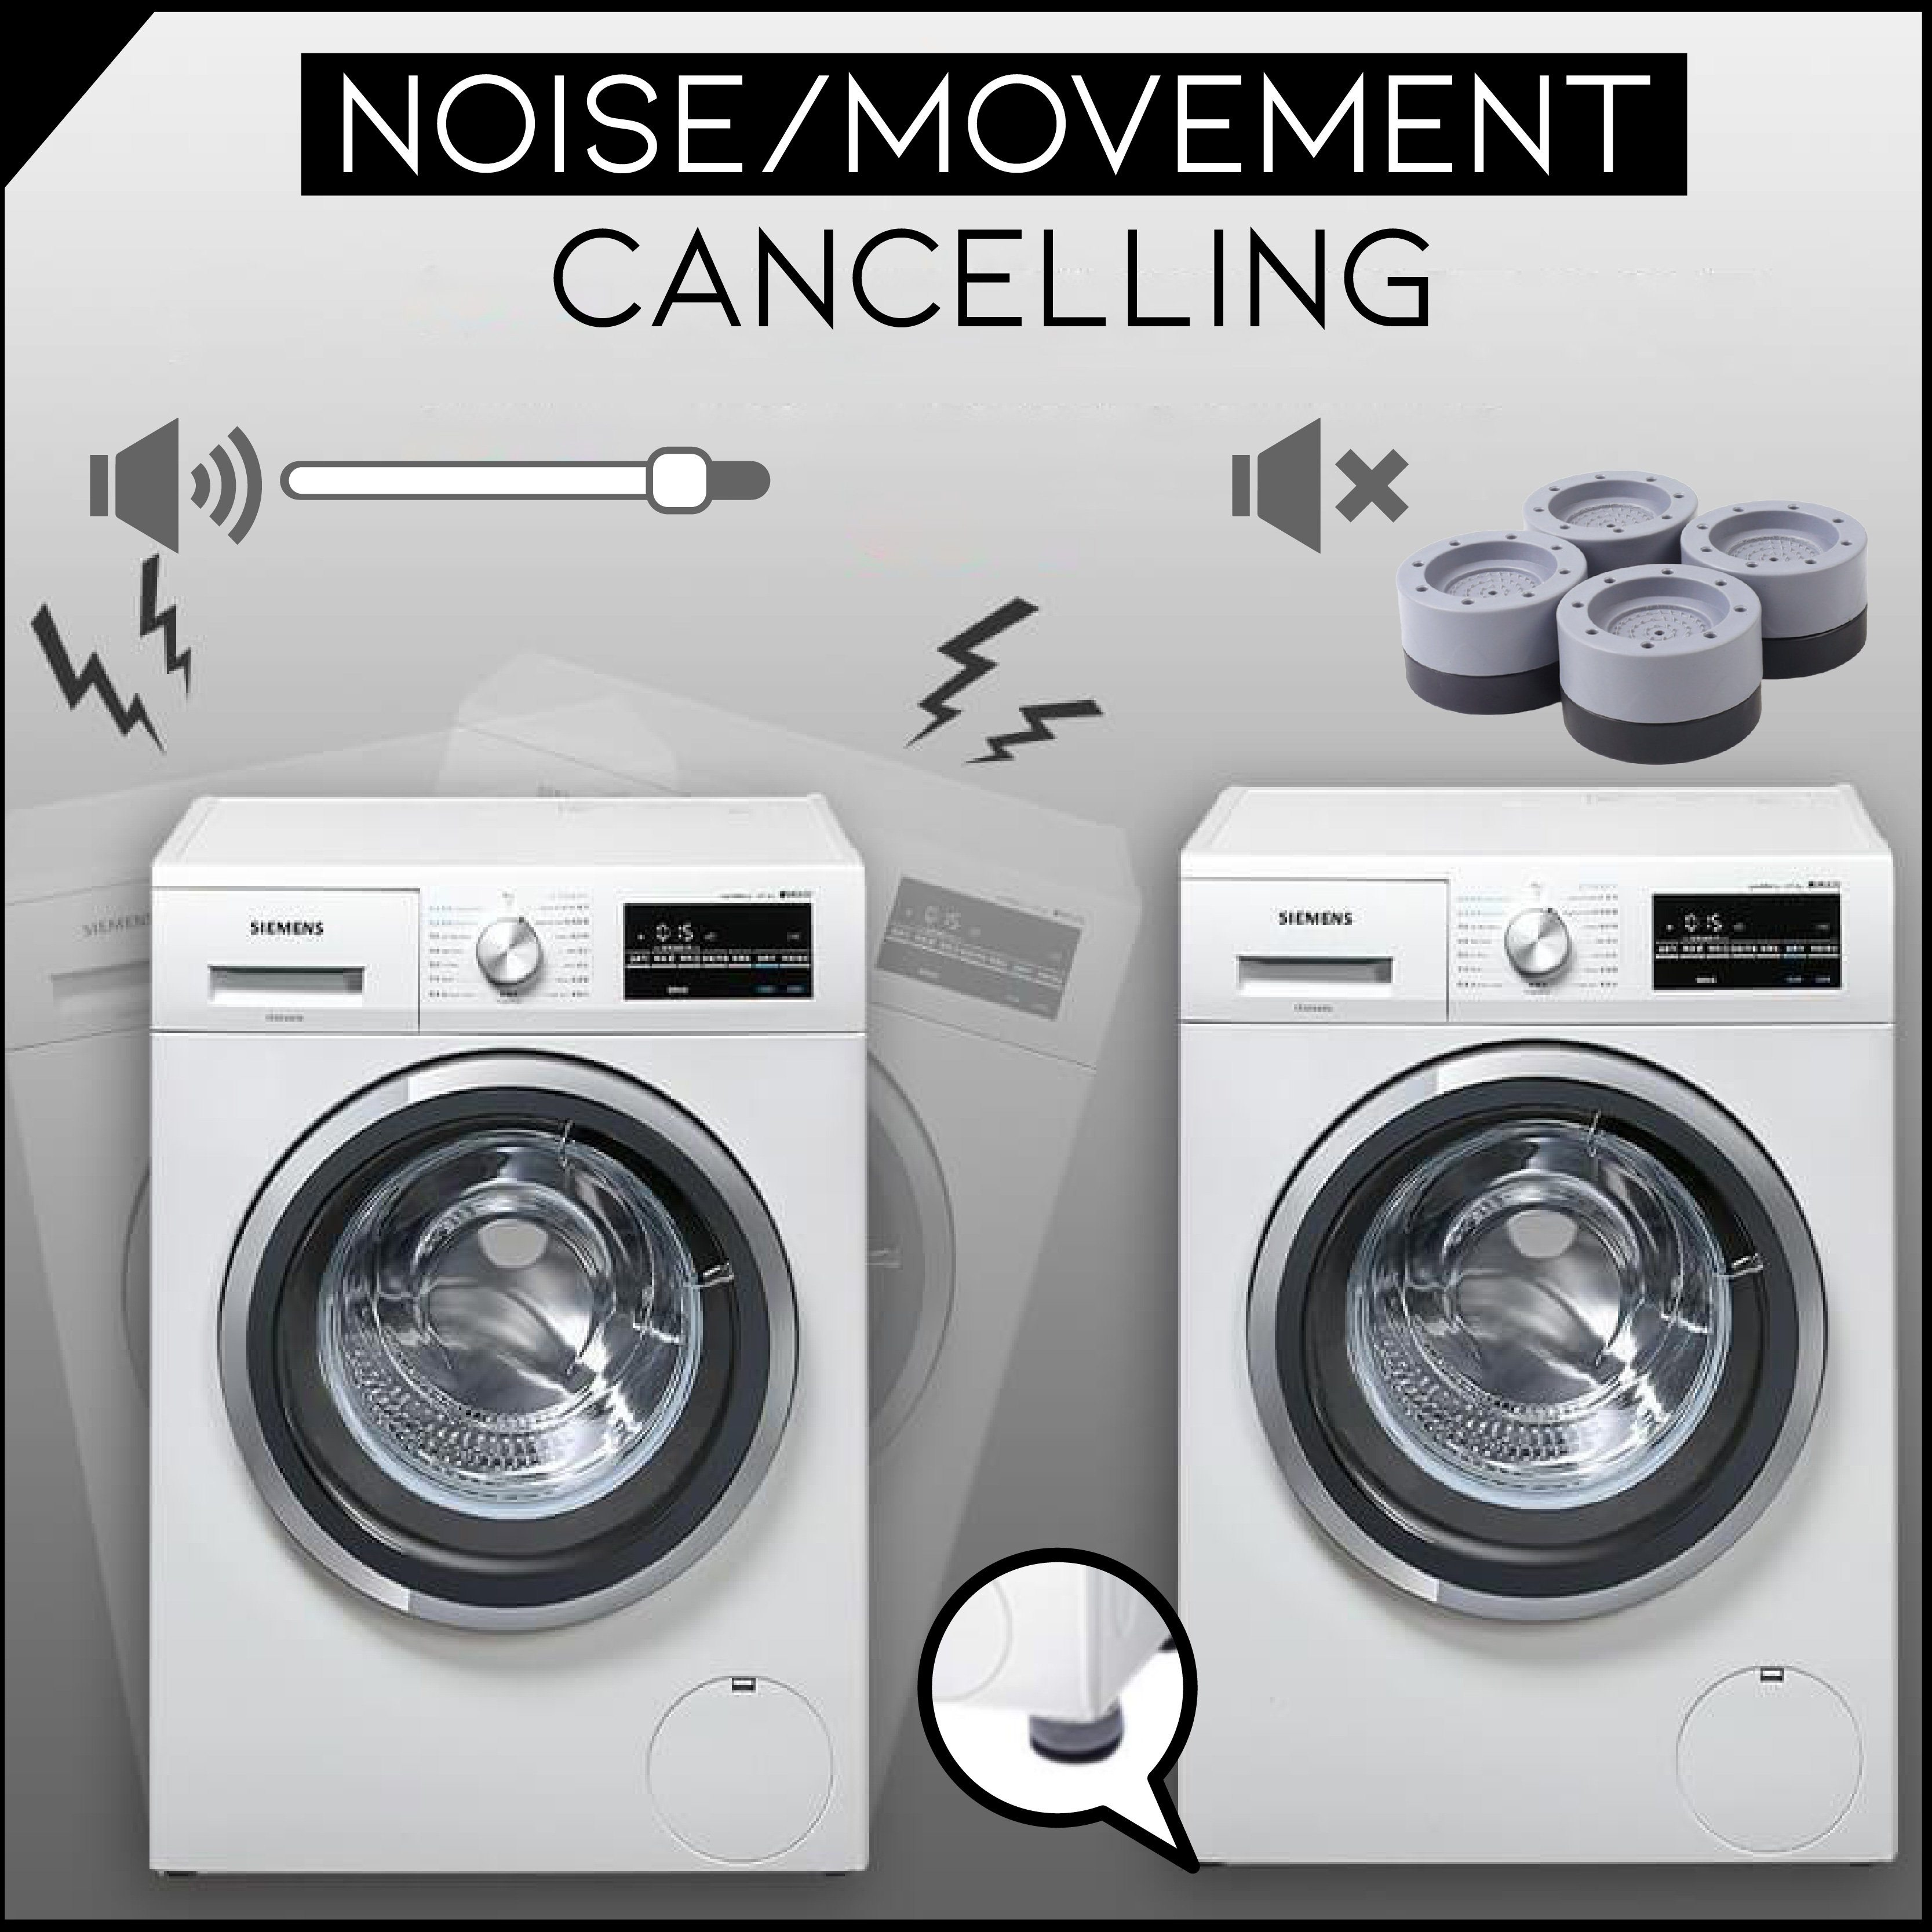 50% OFF---Shock And Noise Cancelling Washing Machine Support